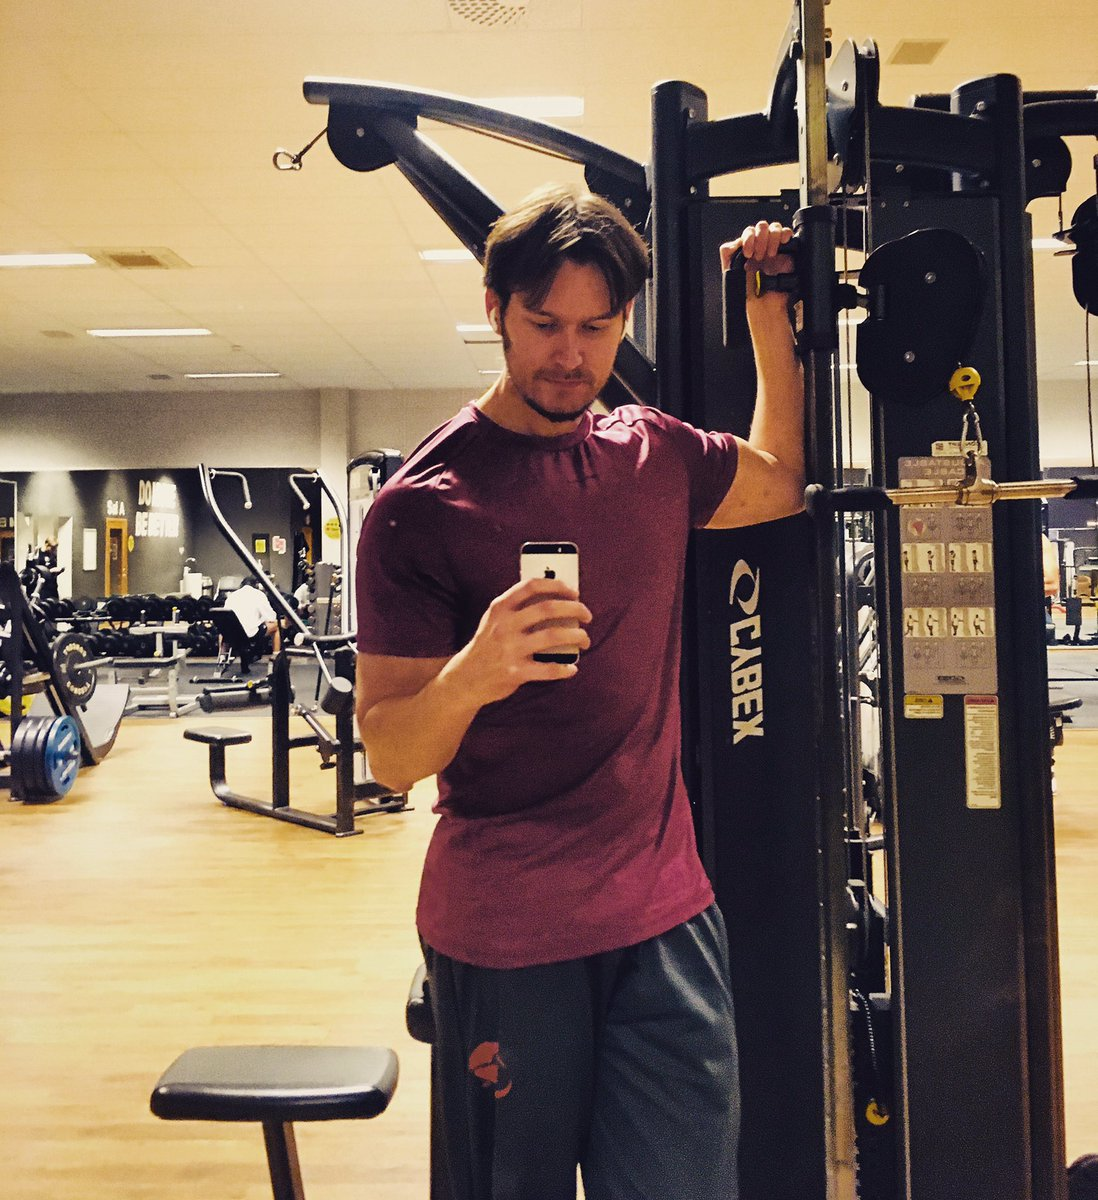 """""""Wake up knowing that whatever happens today, you can handle it. With the right mindset you can turn your weaknesses into your strengths."""" #gym #MondayMotivation #workout #Training"""